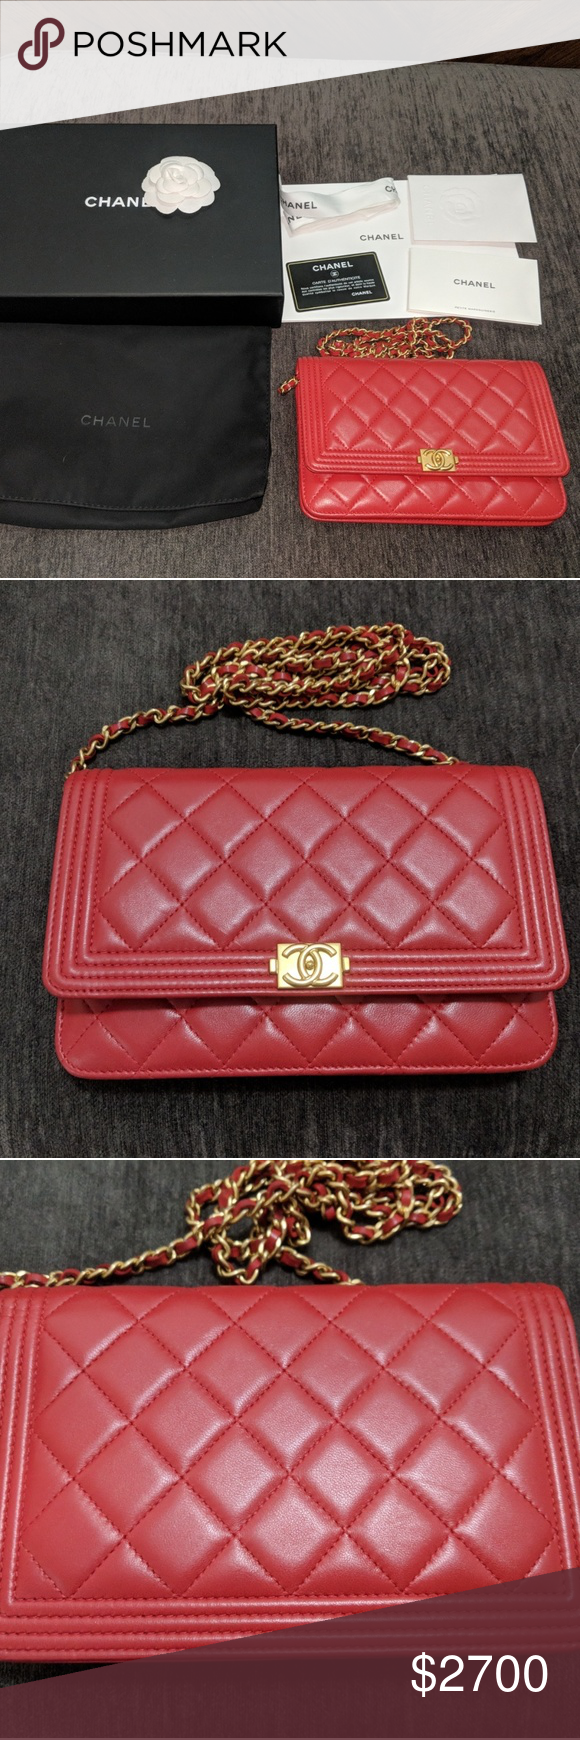 c7388f2d1eb40e NO P. Authentic Chanel Le Boy Wallet on Chain (WOC) in red quilted lambskin.  In fantastic, like new condition. Has minimal storage indentations on  leather.